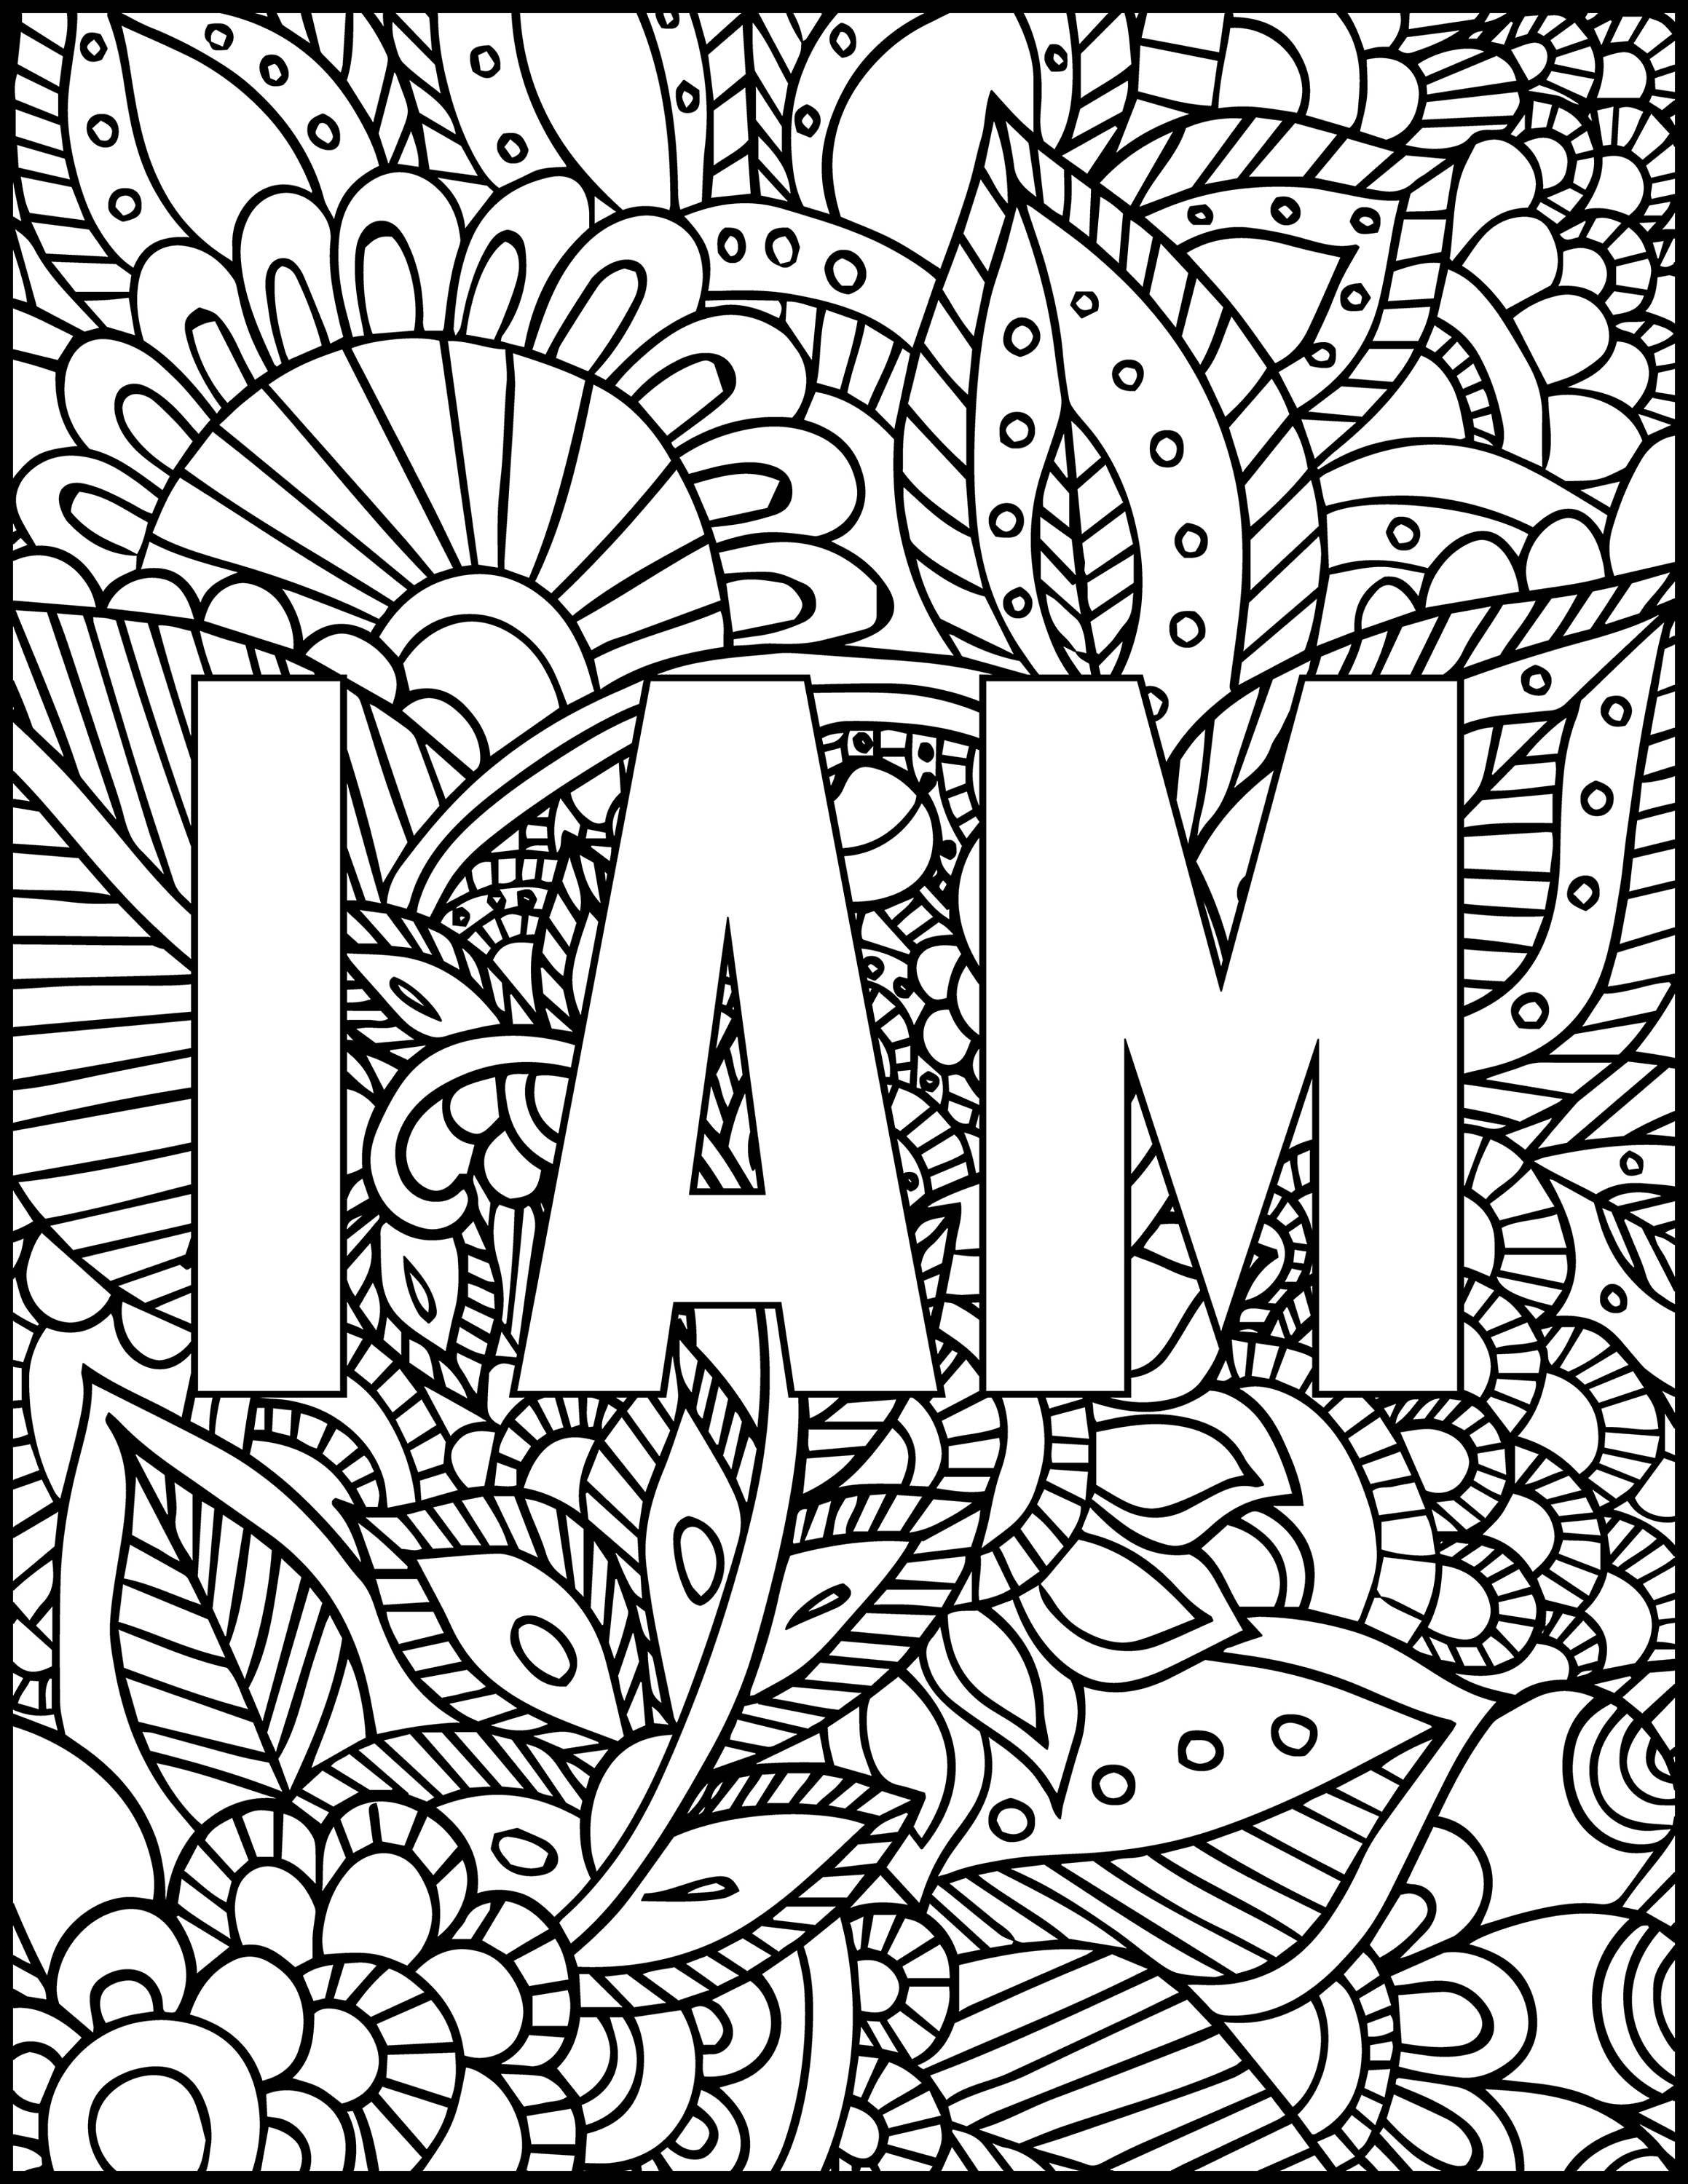 adults color childrens coloring books get this difficult butterfly coloring pages for adults color books coloring childrens adults